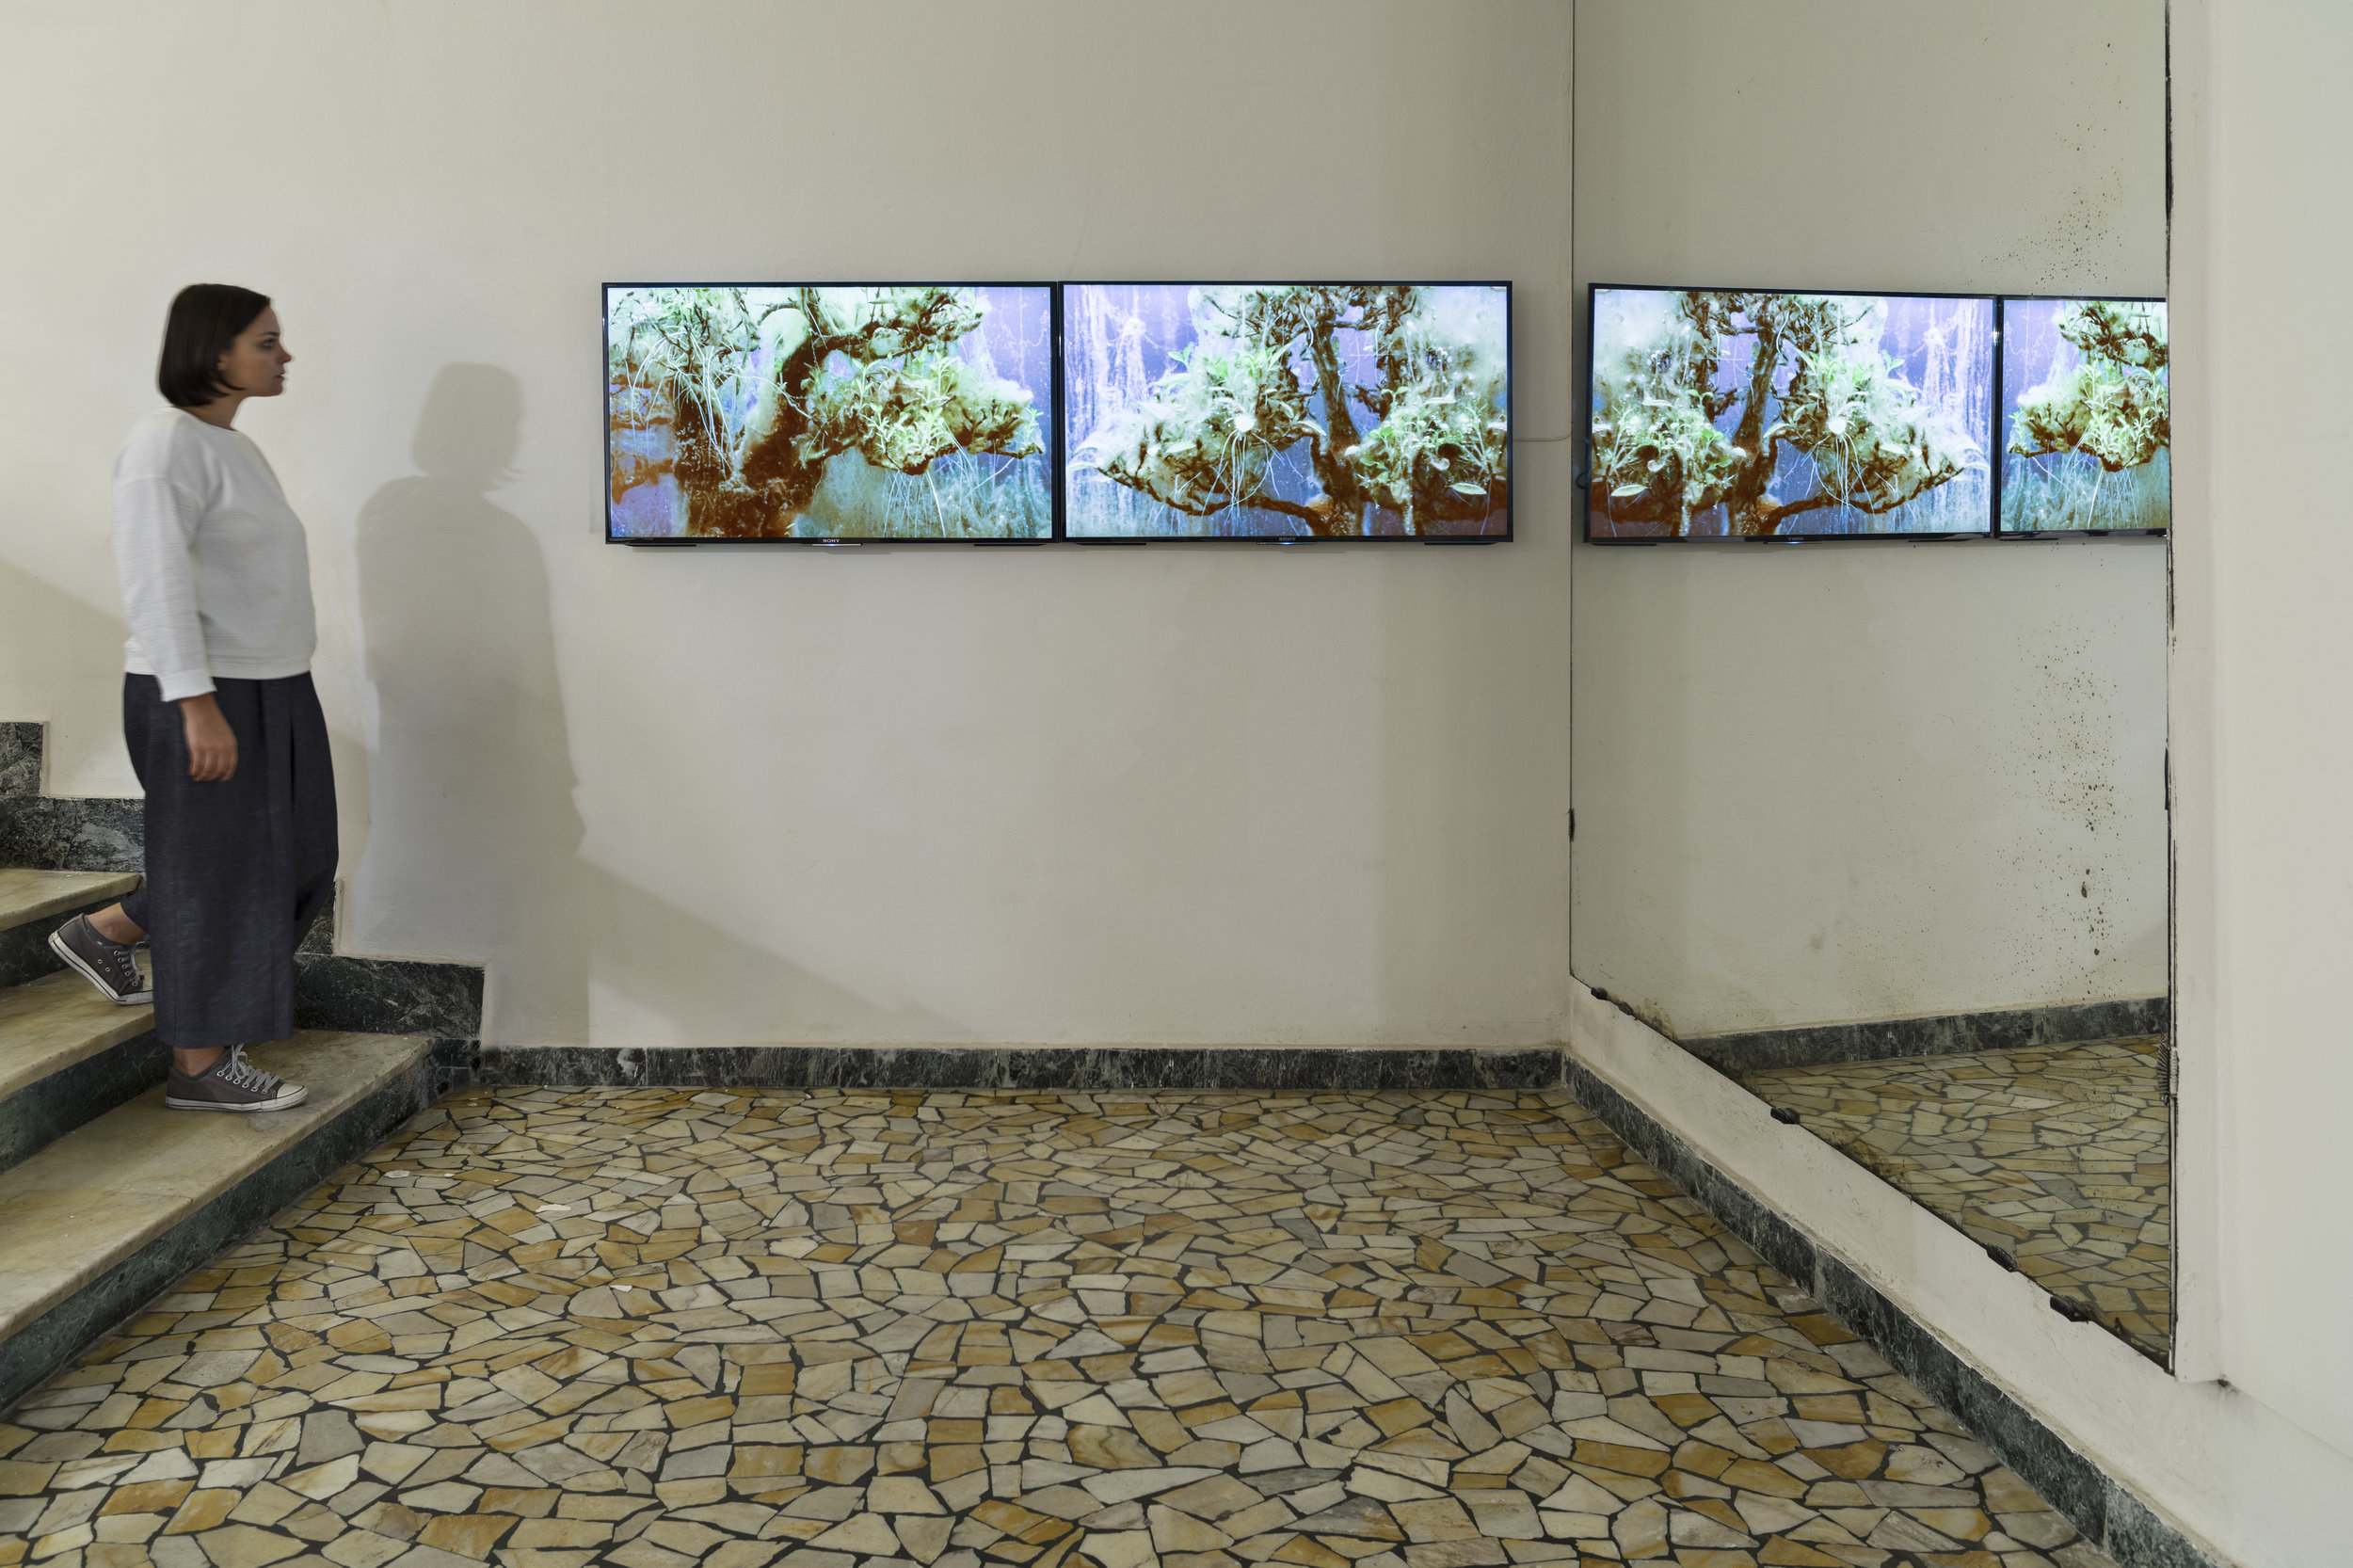 Various Artists.BLFHTH, 3 Bomen, Drown.ke, pae and io, Galleria Continua, San Gimignano, 2015, video, 2 screens, compositing: Alexis Destoop & Devi Mallal. Photo by:   Ela Bialkowska